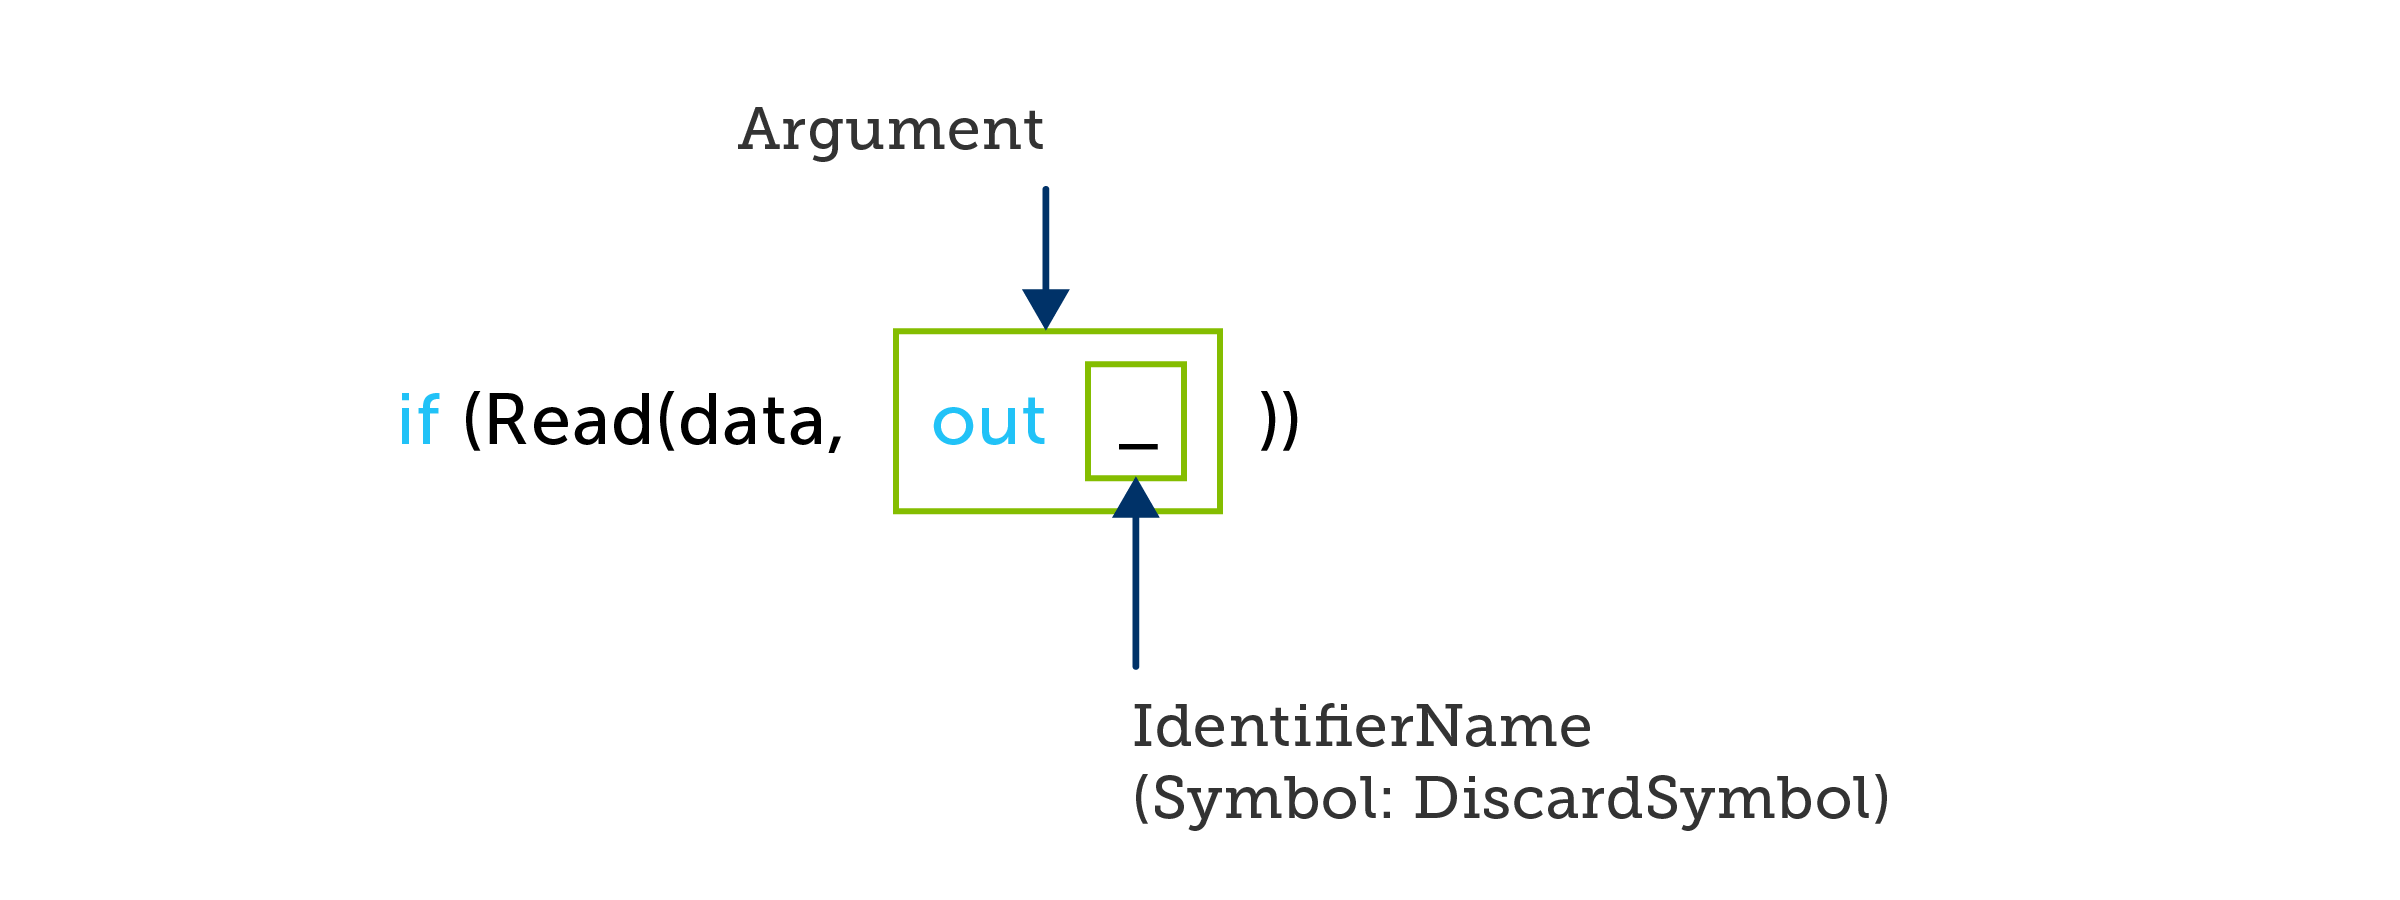 A C# if statement containing a method invocation that discards one out argument